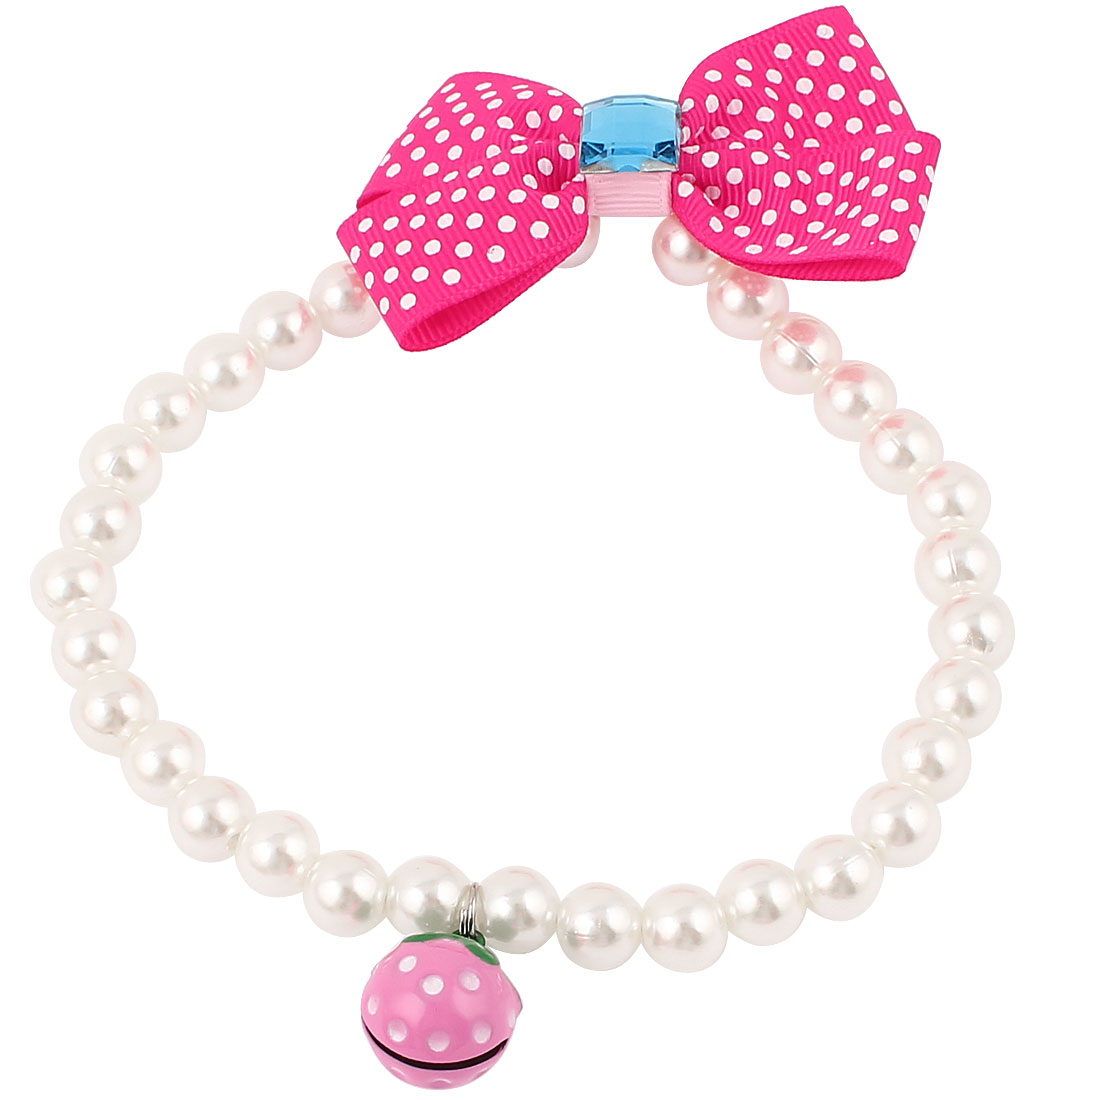 Metal Bell Pendant Bowtie Accent Pet Dog Plastic Beads Pearls Collar Necklace White Fuchsia M